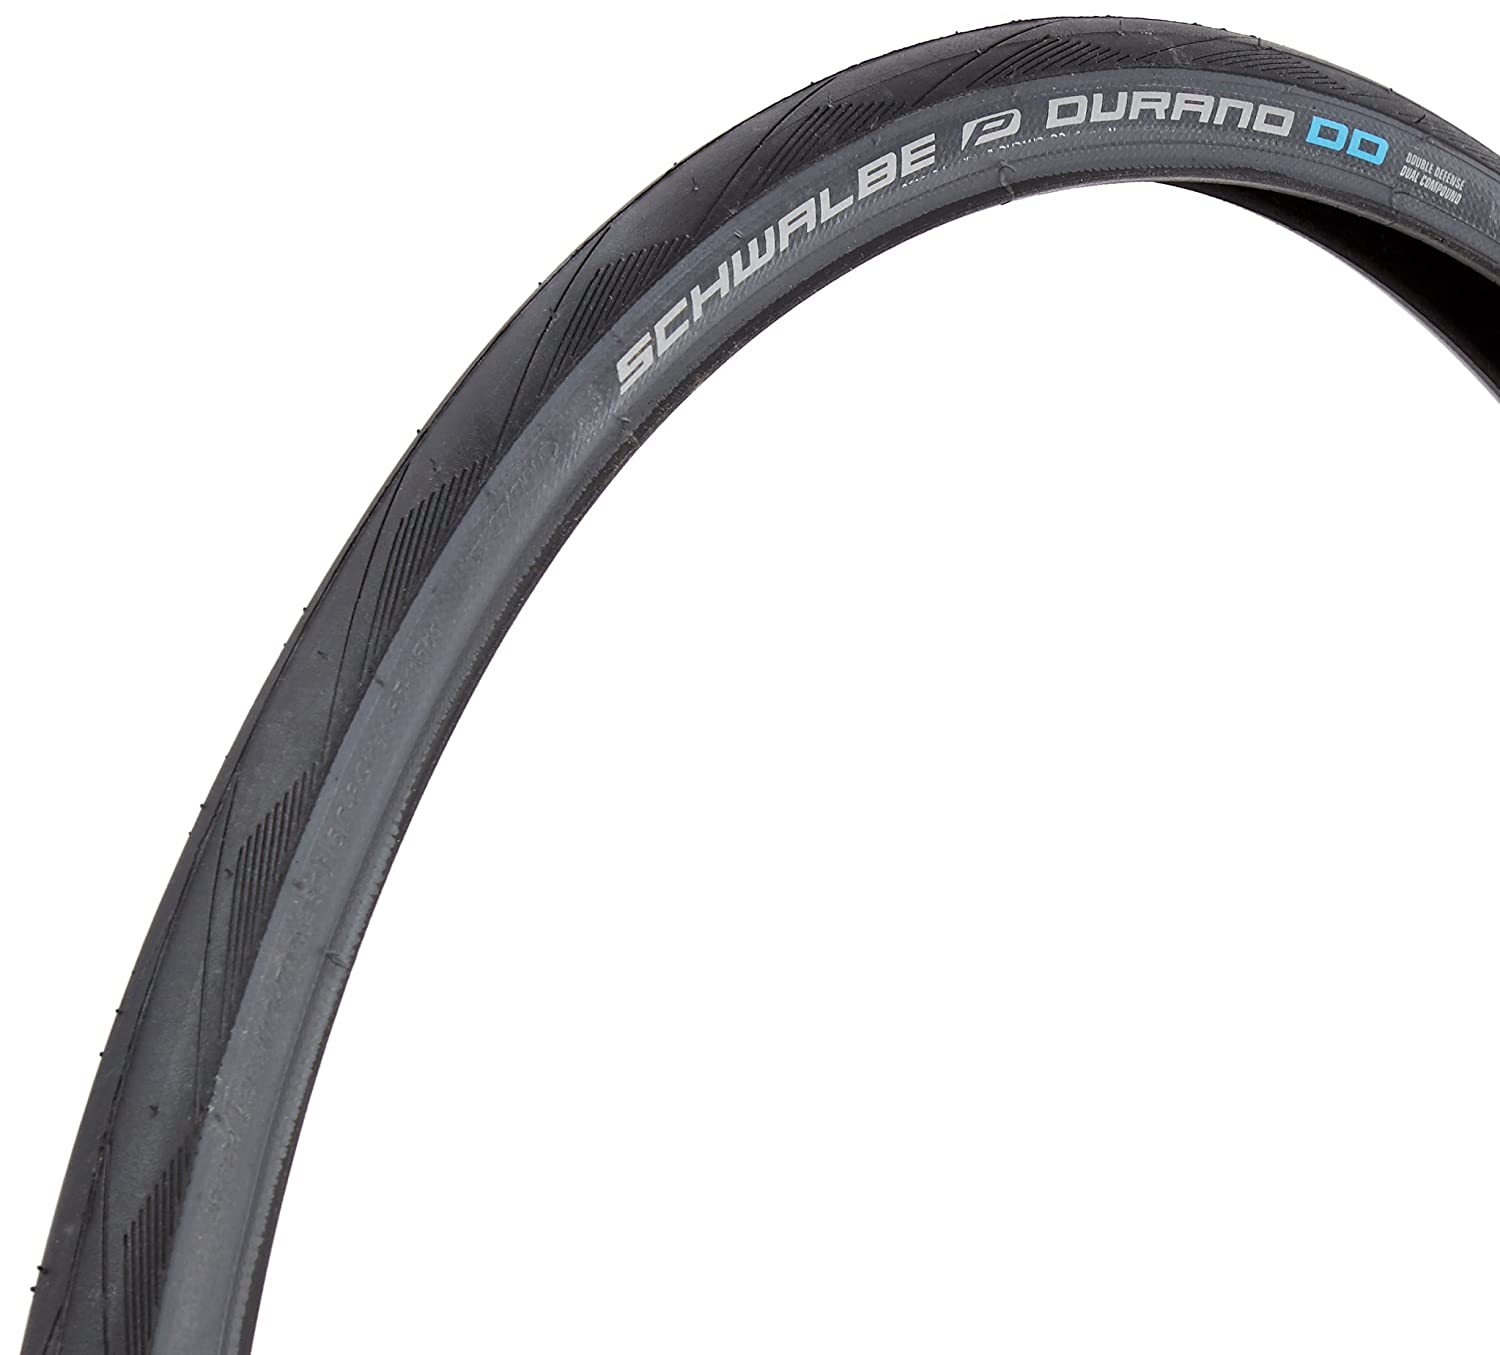 Wire Bead Schwalbe Durano DD HS 464 Road Bicycle Tire